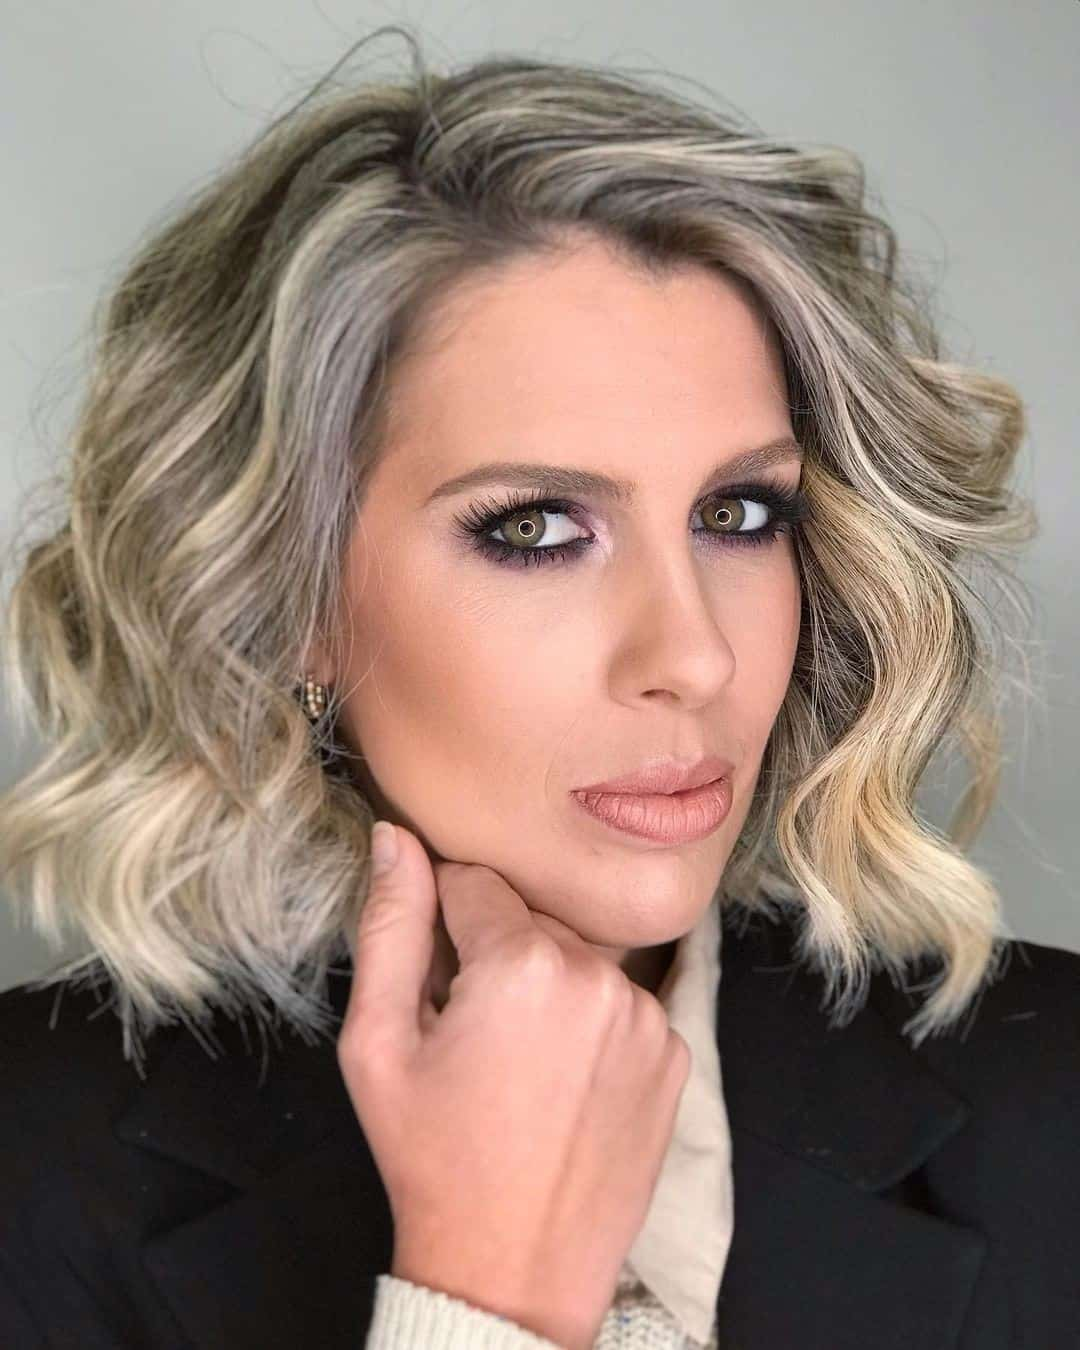 Blonde Look For Women With Round Faces